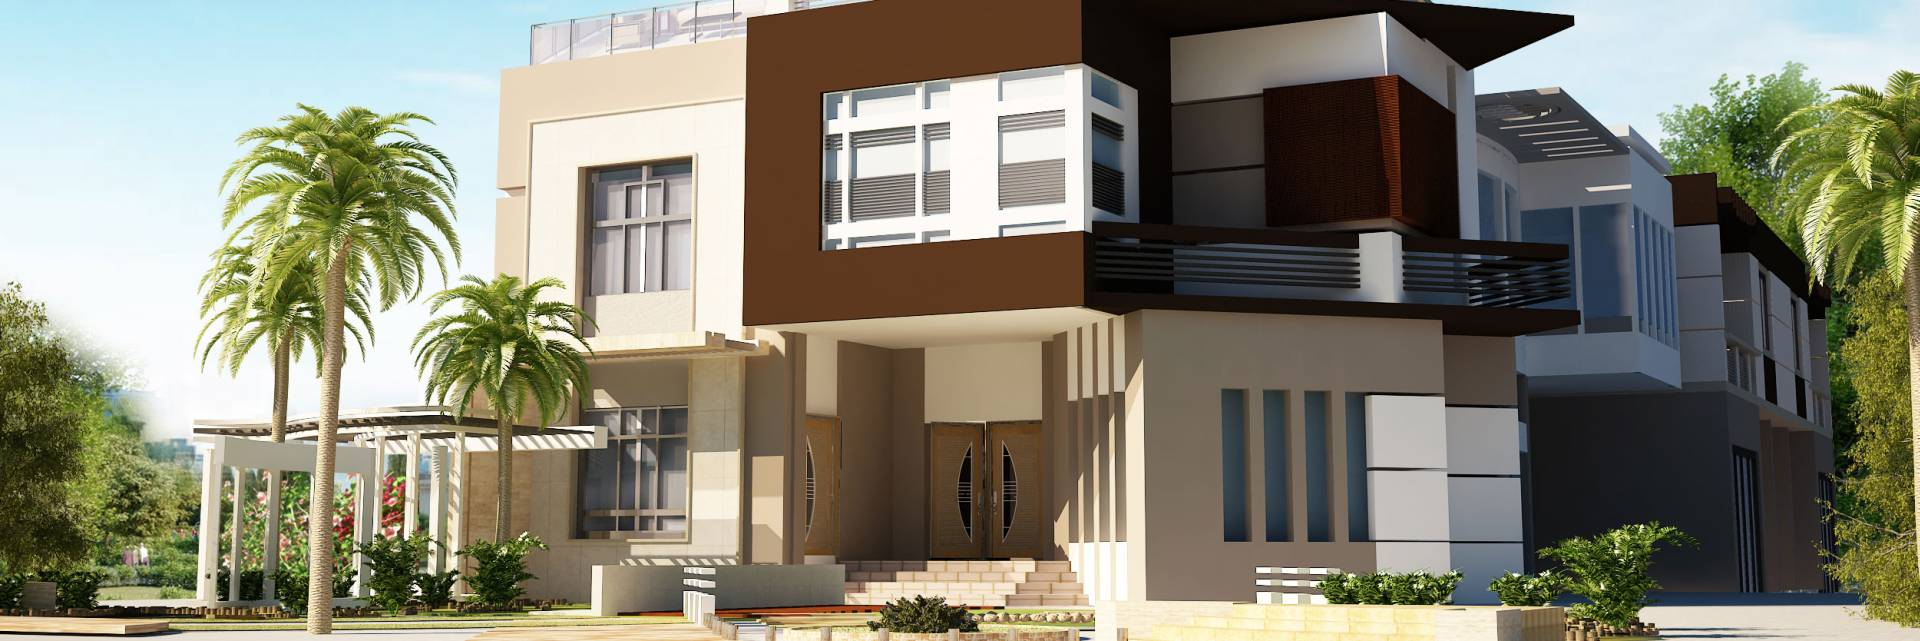 Al-Hooqani-Architechtural-Design-3